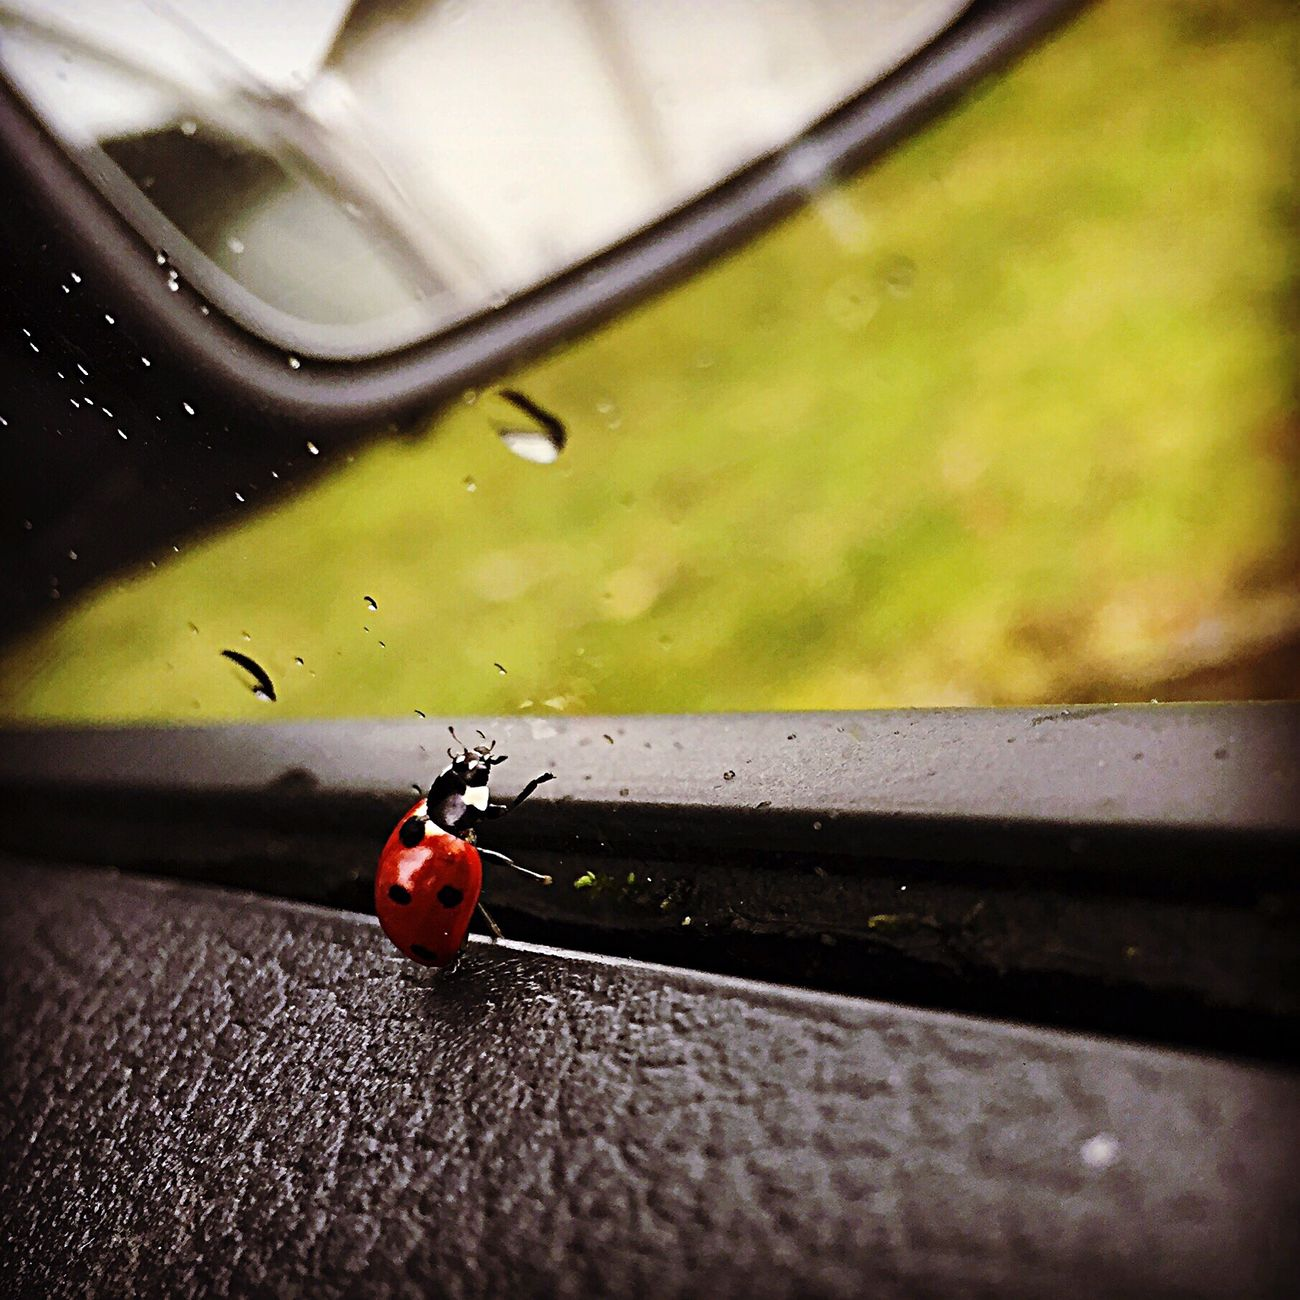 Ladybug Ladybird Pet Red Black Bugs Fly Car Driving Rain First Drive